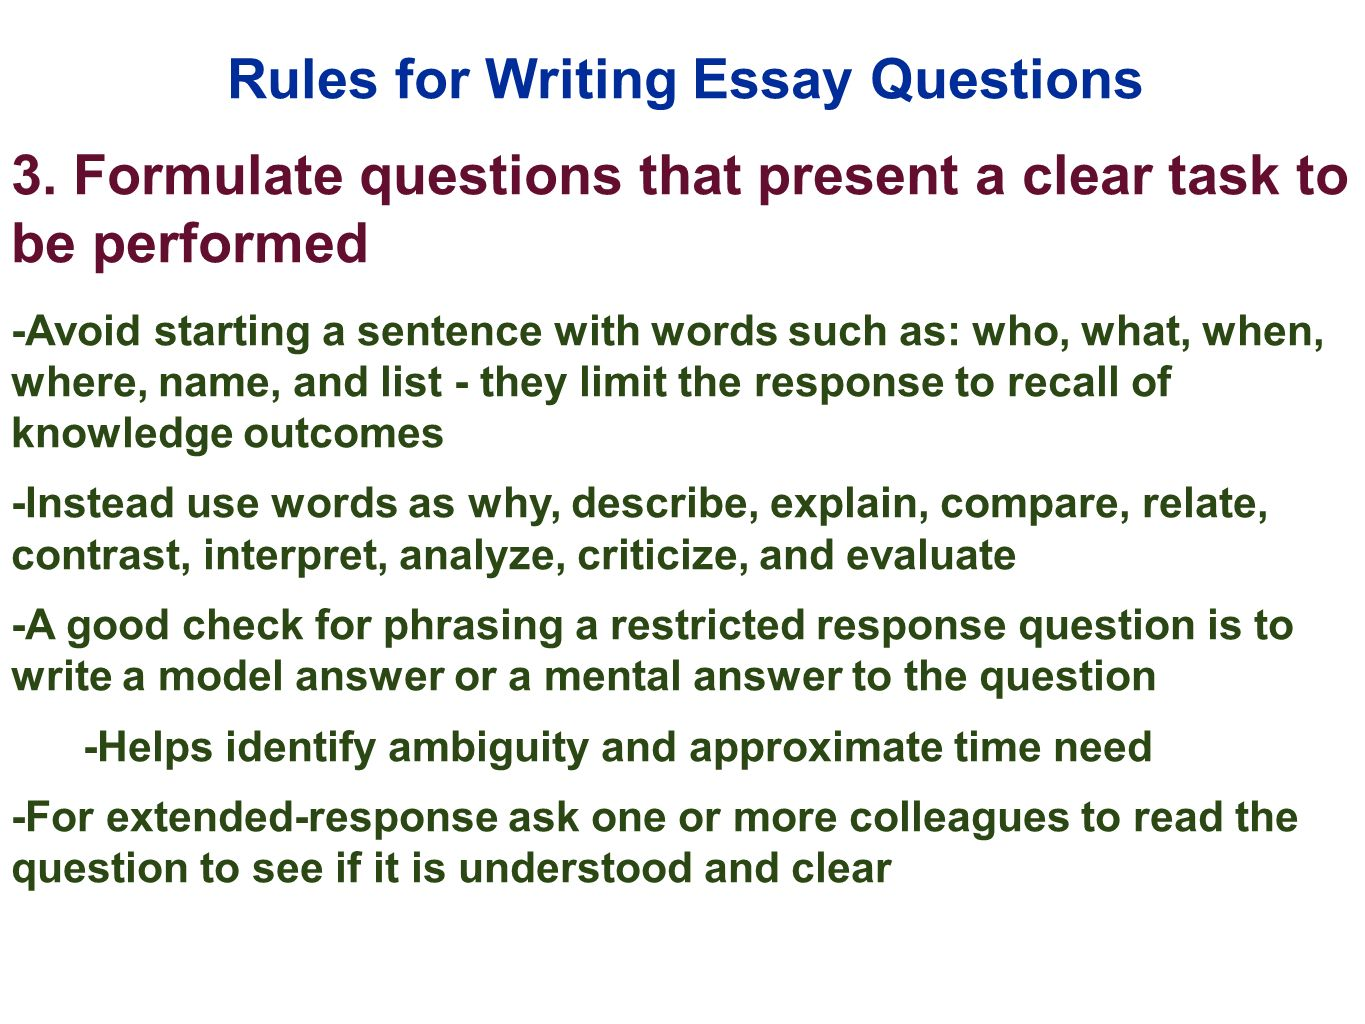 rules for formal essay writing Guidelines for effective writing in regard to letters, reports, memos, resumes, school papers, or even e-mails.